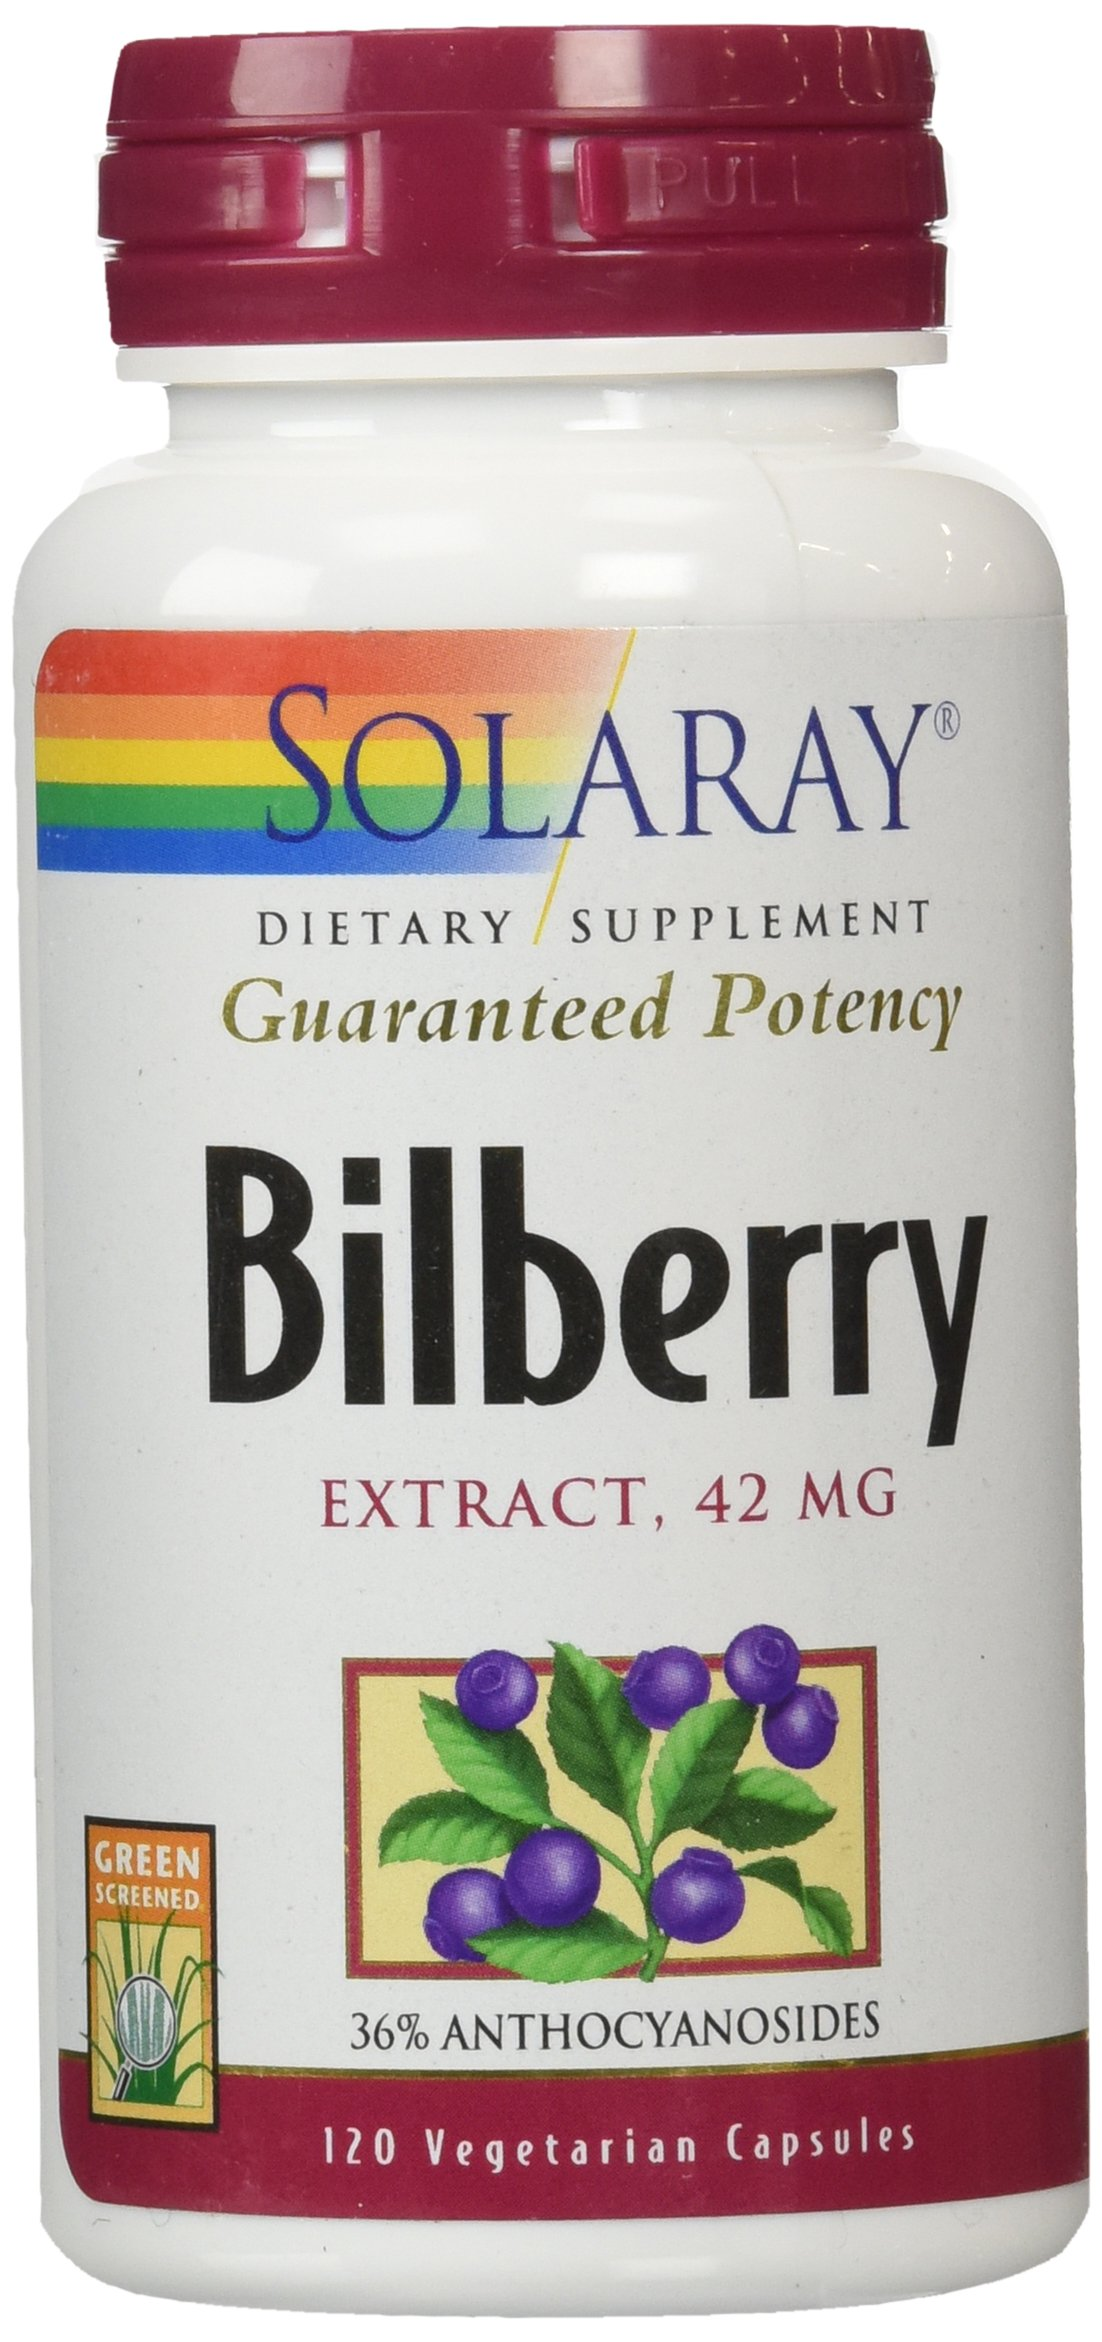 Solaray Bilberry Extract, 42mg, 120 Count